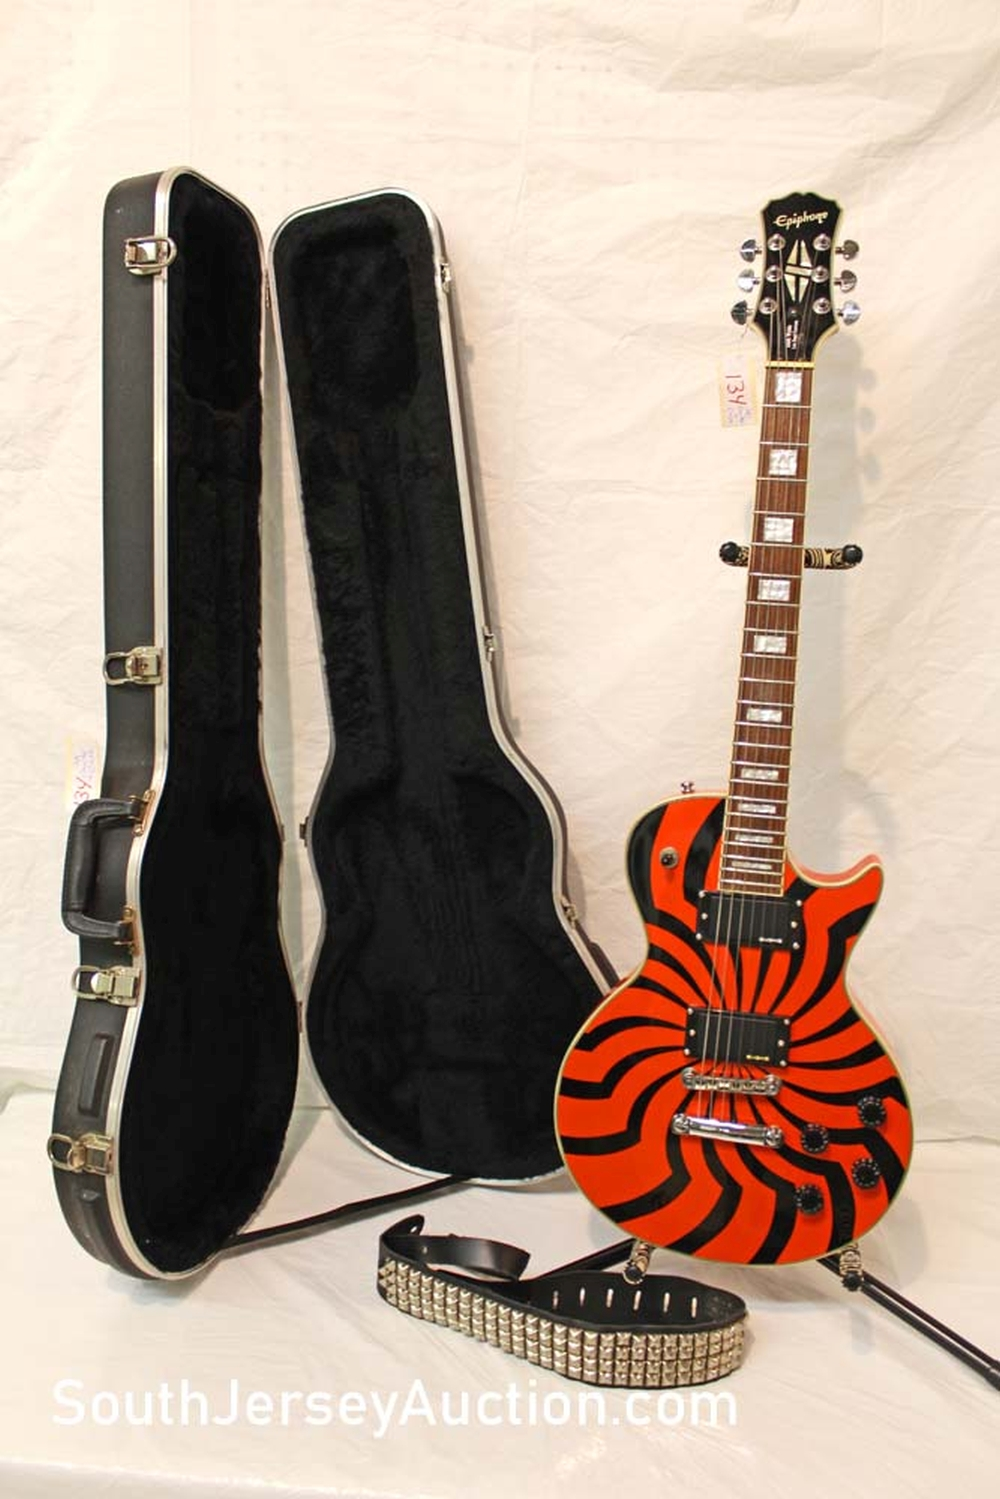 2002 Epiphone Zakk Wylde Les Paul Custom guitar, Limited Edition, EMGHZ pick ups, Buzz Saw paint  with strap s/n 10021508115, grover tuners, with hard SKB case, all original excellent shape